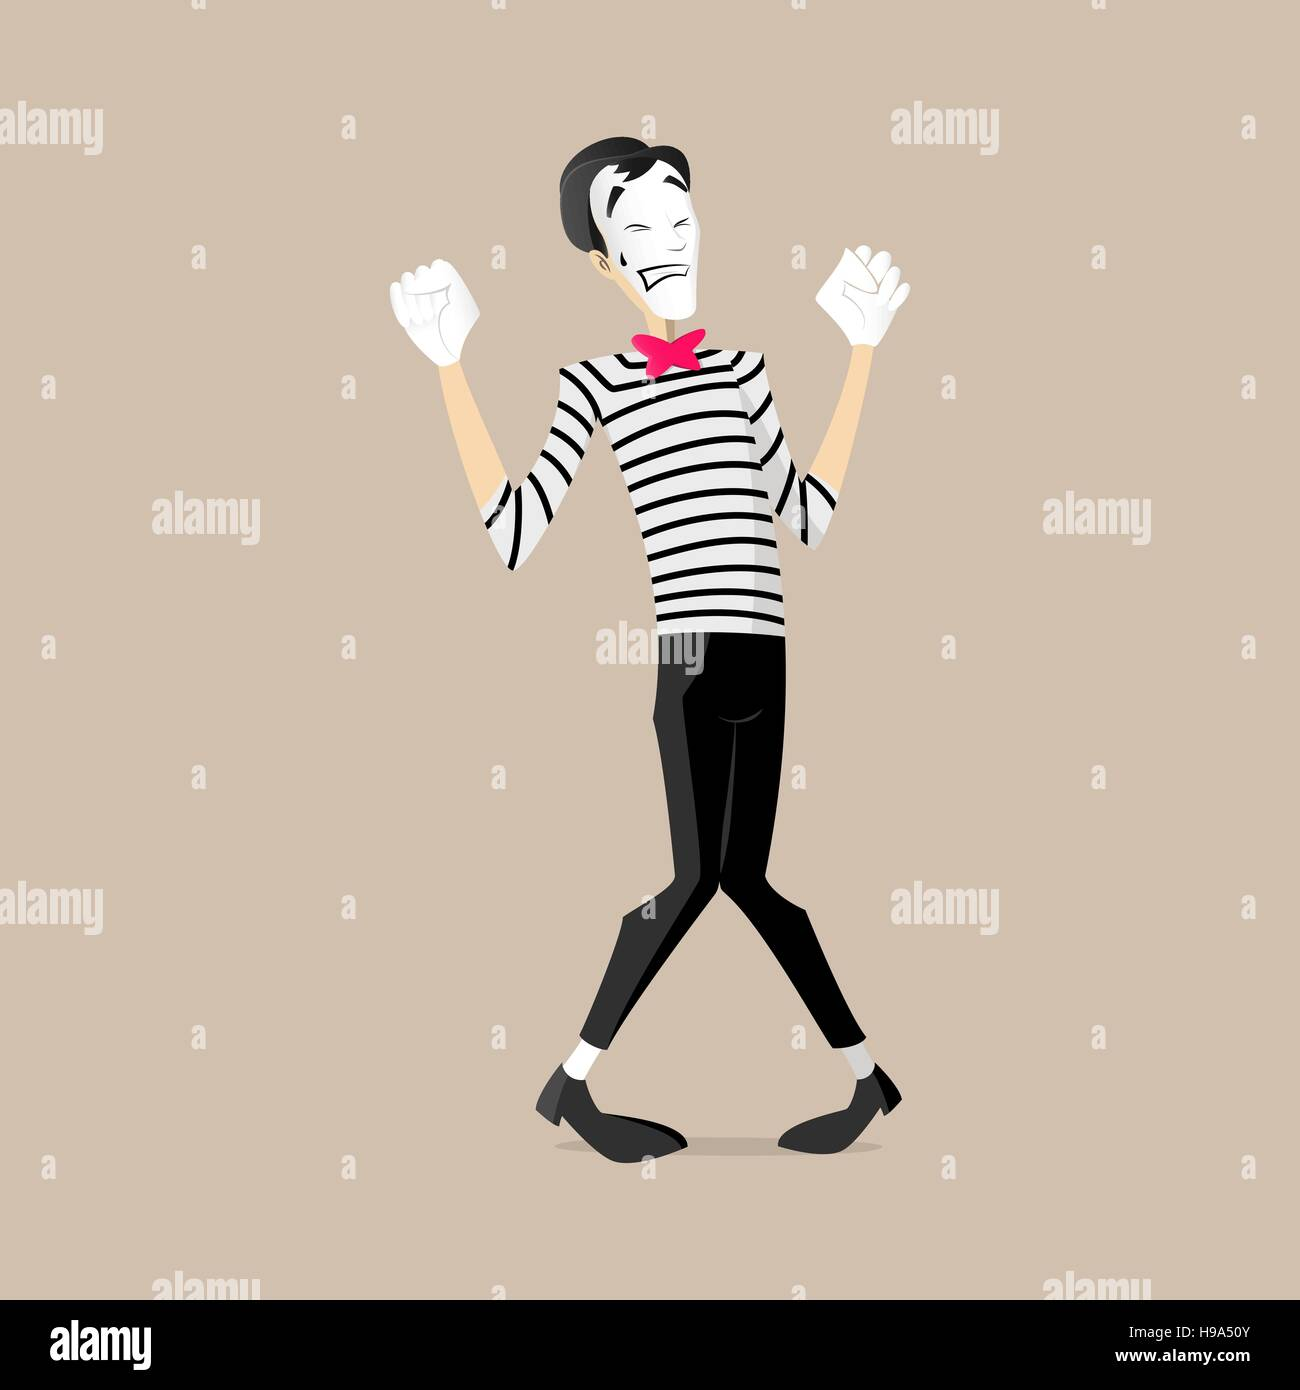 A Mime performing a pantomime called powerlifting - Stock Vector